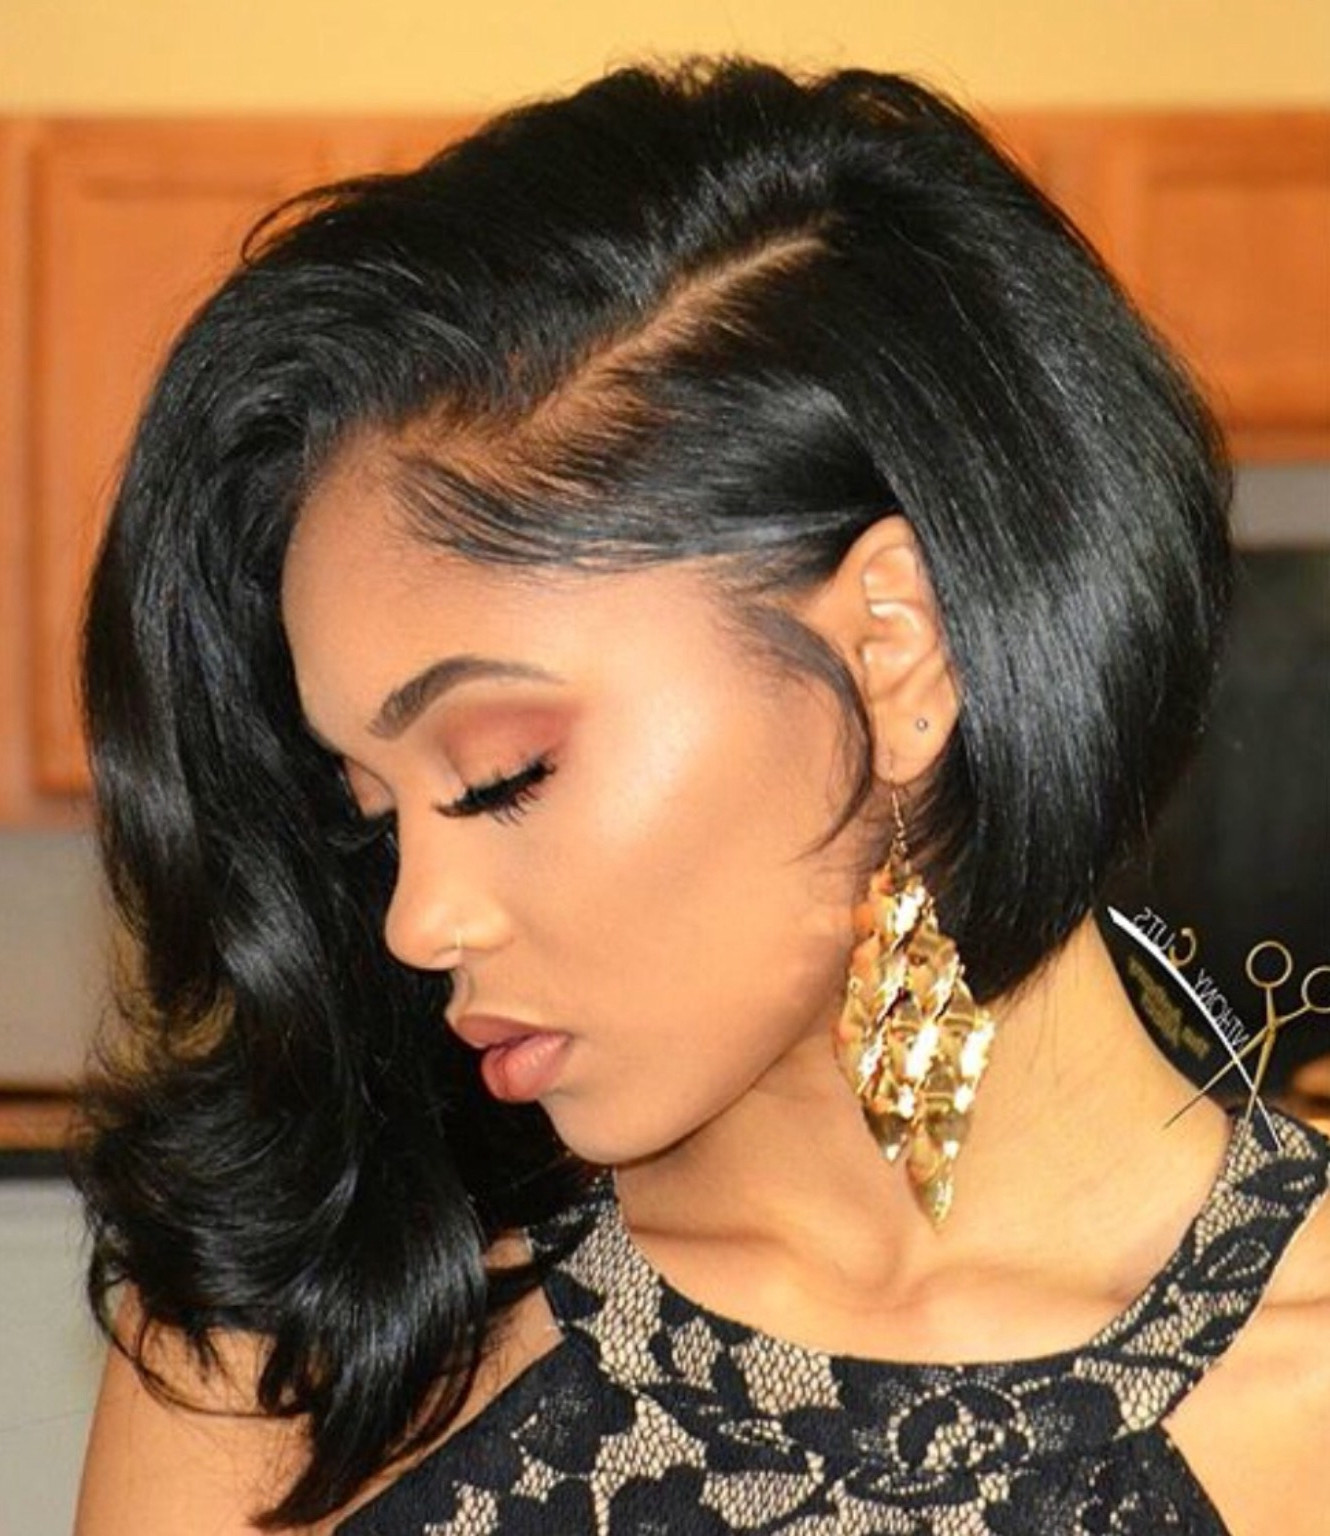 Best ideas about Medium Weave Hairstyles . Save or Pin Short Bob Weaves Hairstyles Now.